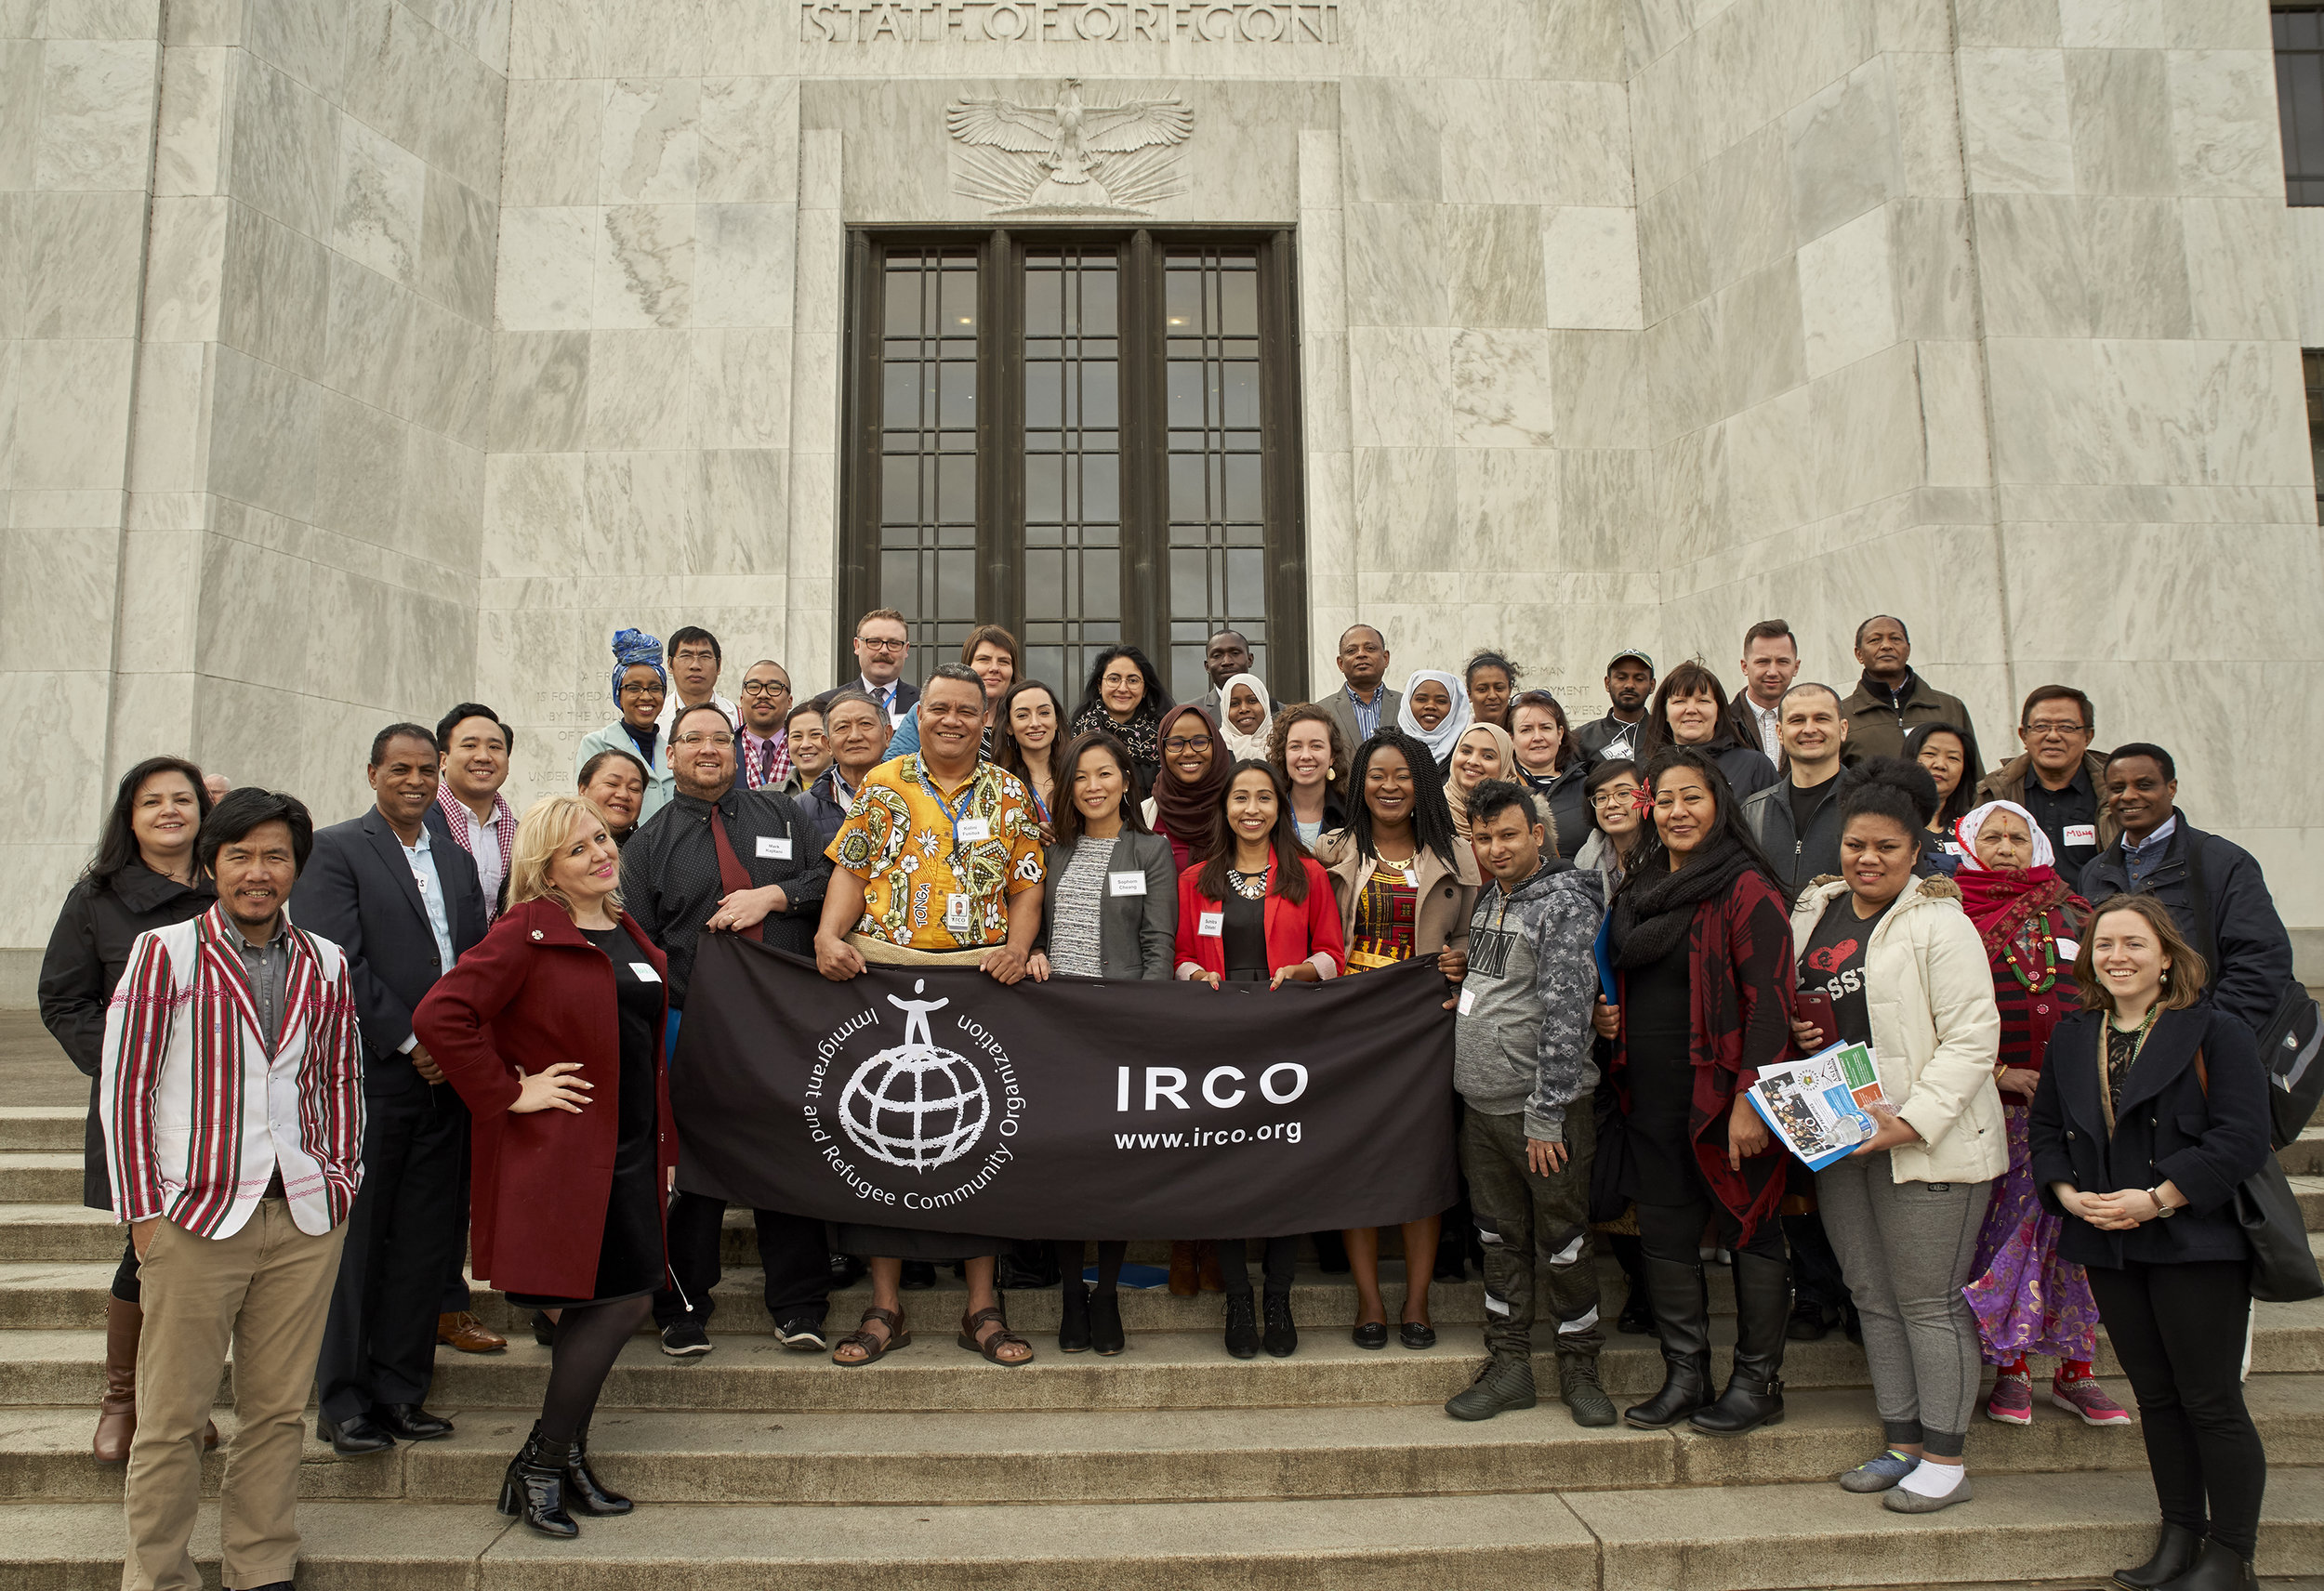 Members of the Multiethnic Advisory Group stand on the steps of Oregon's State Capitol building holding an IRCO banner.